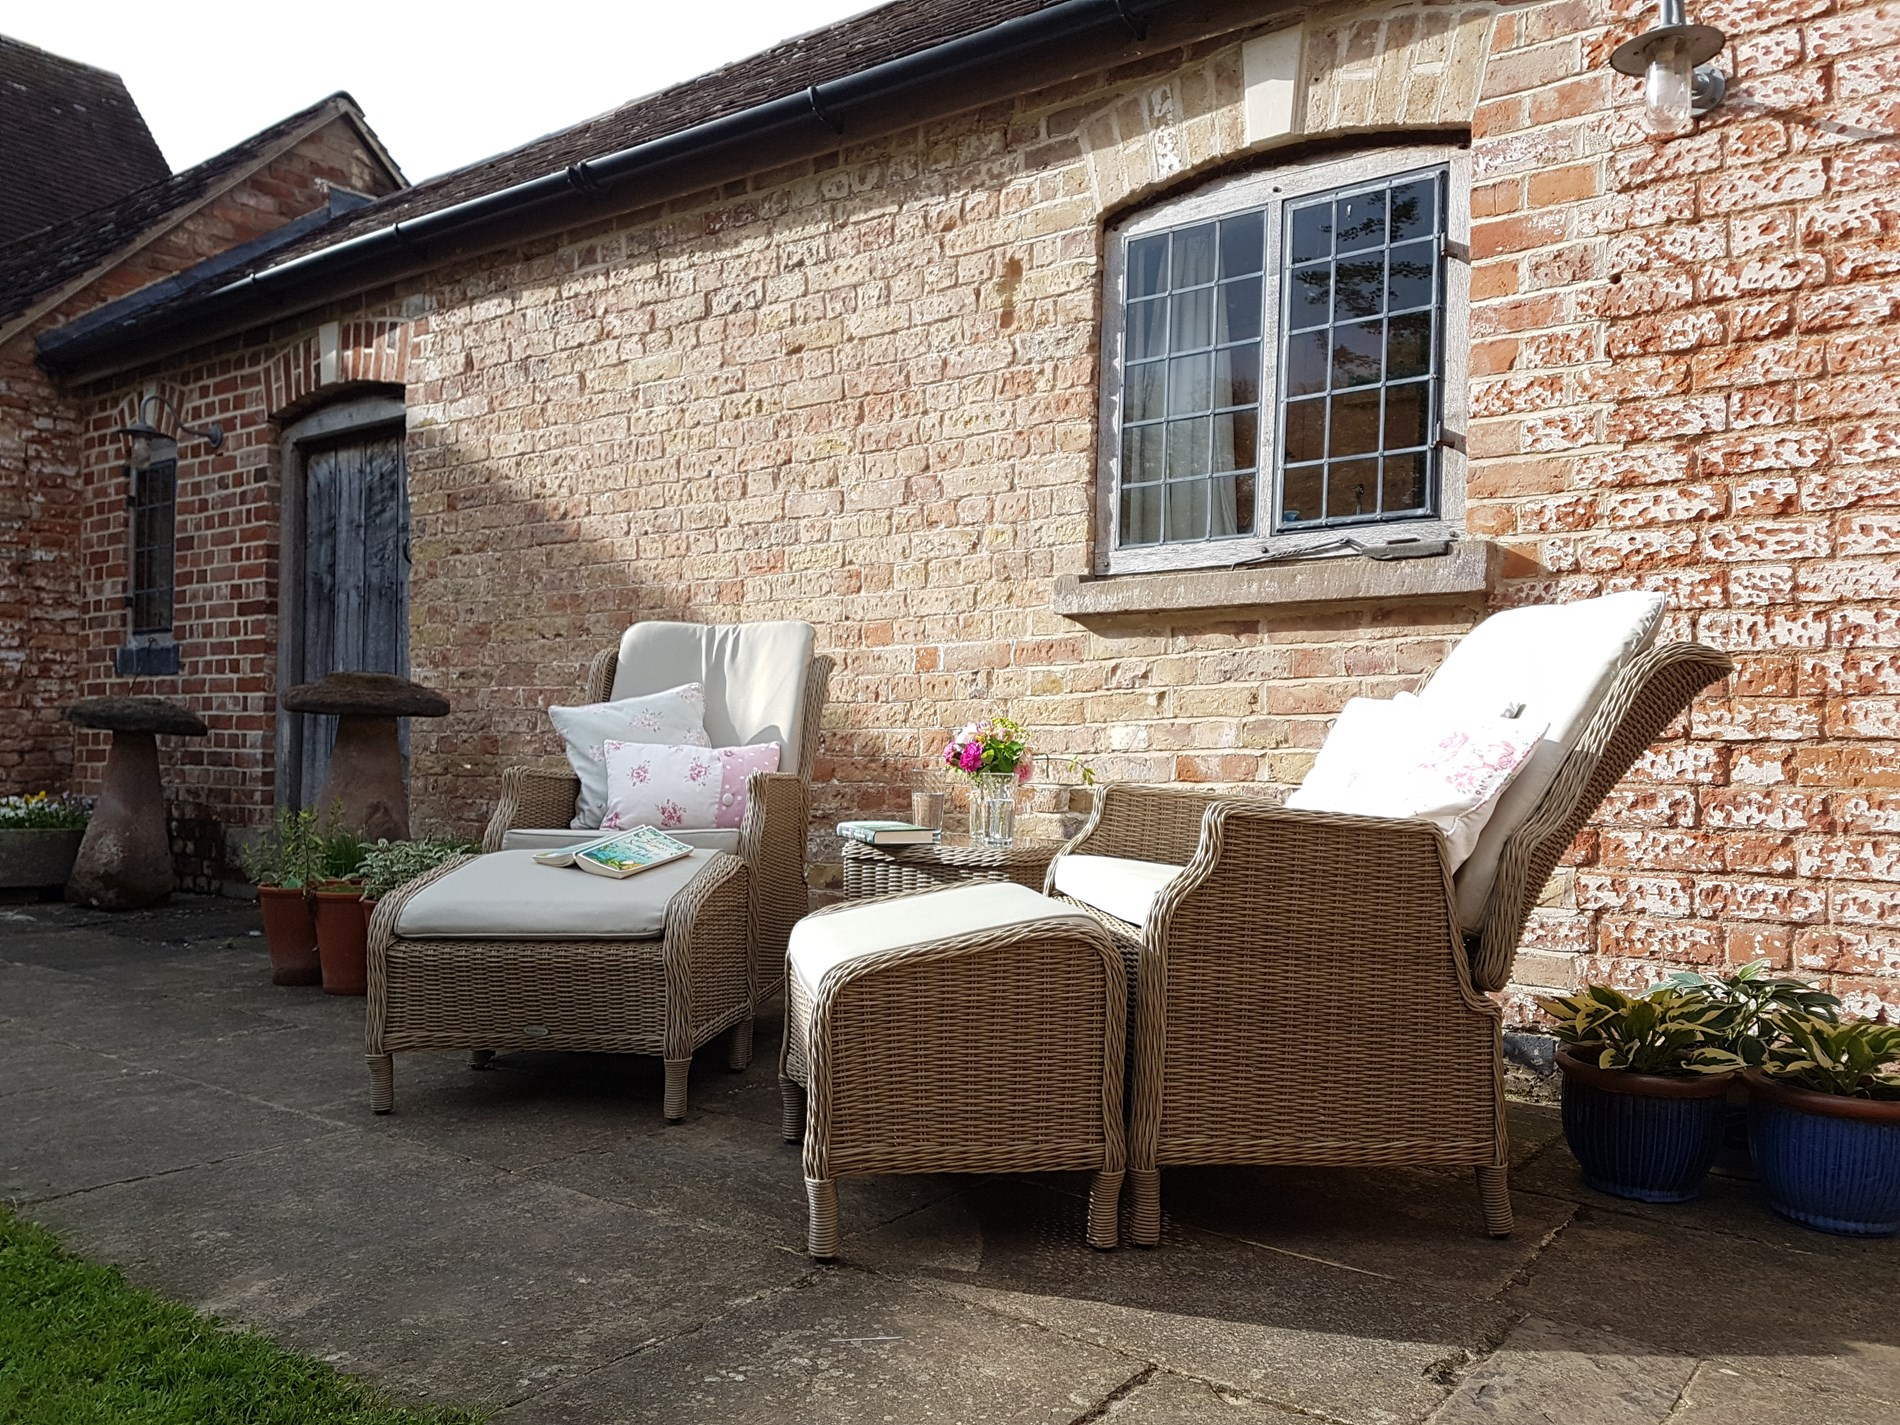 Beautiful outdoor seating to enjoy the sun and a good book